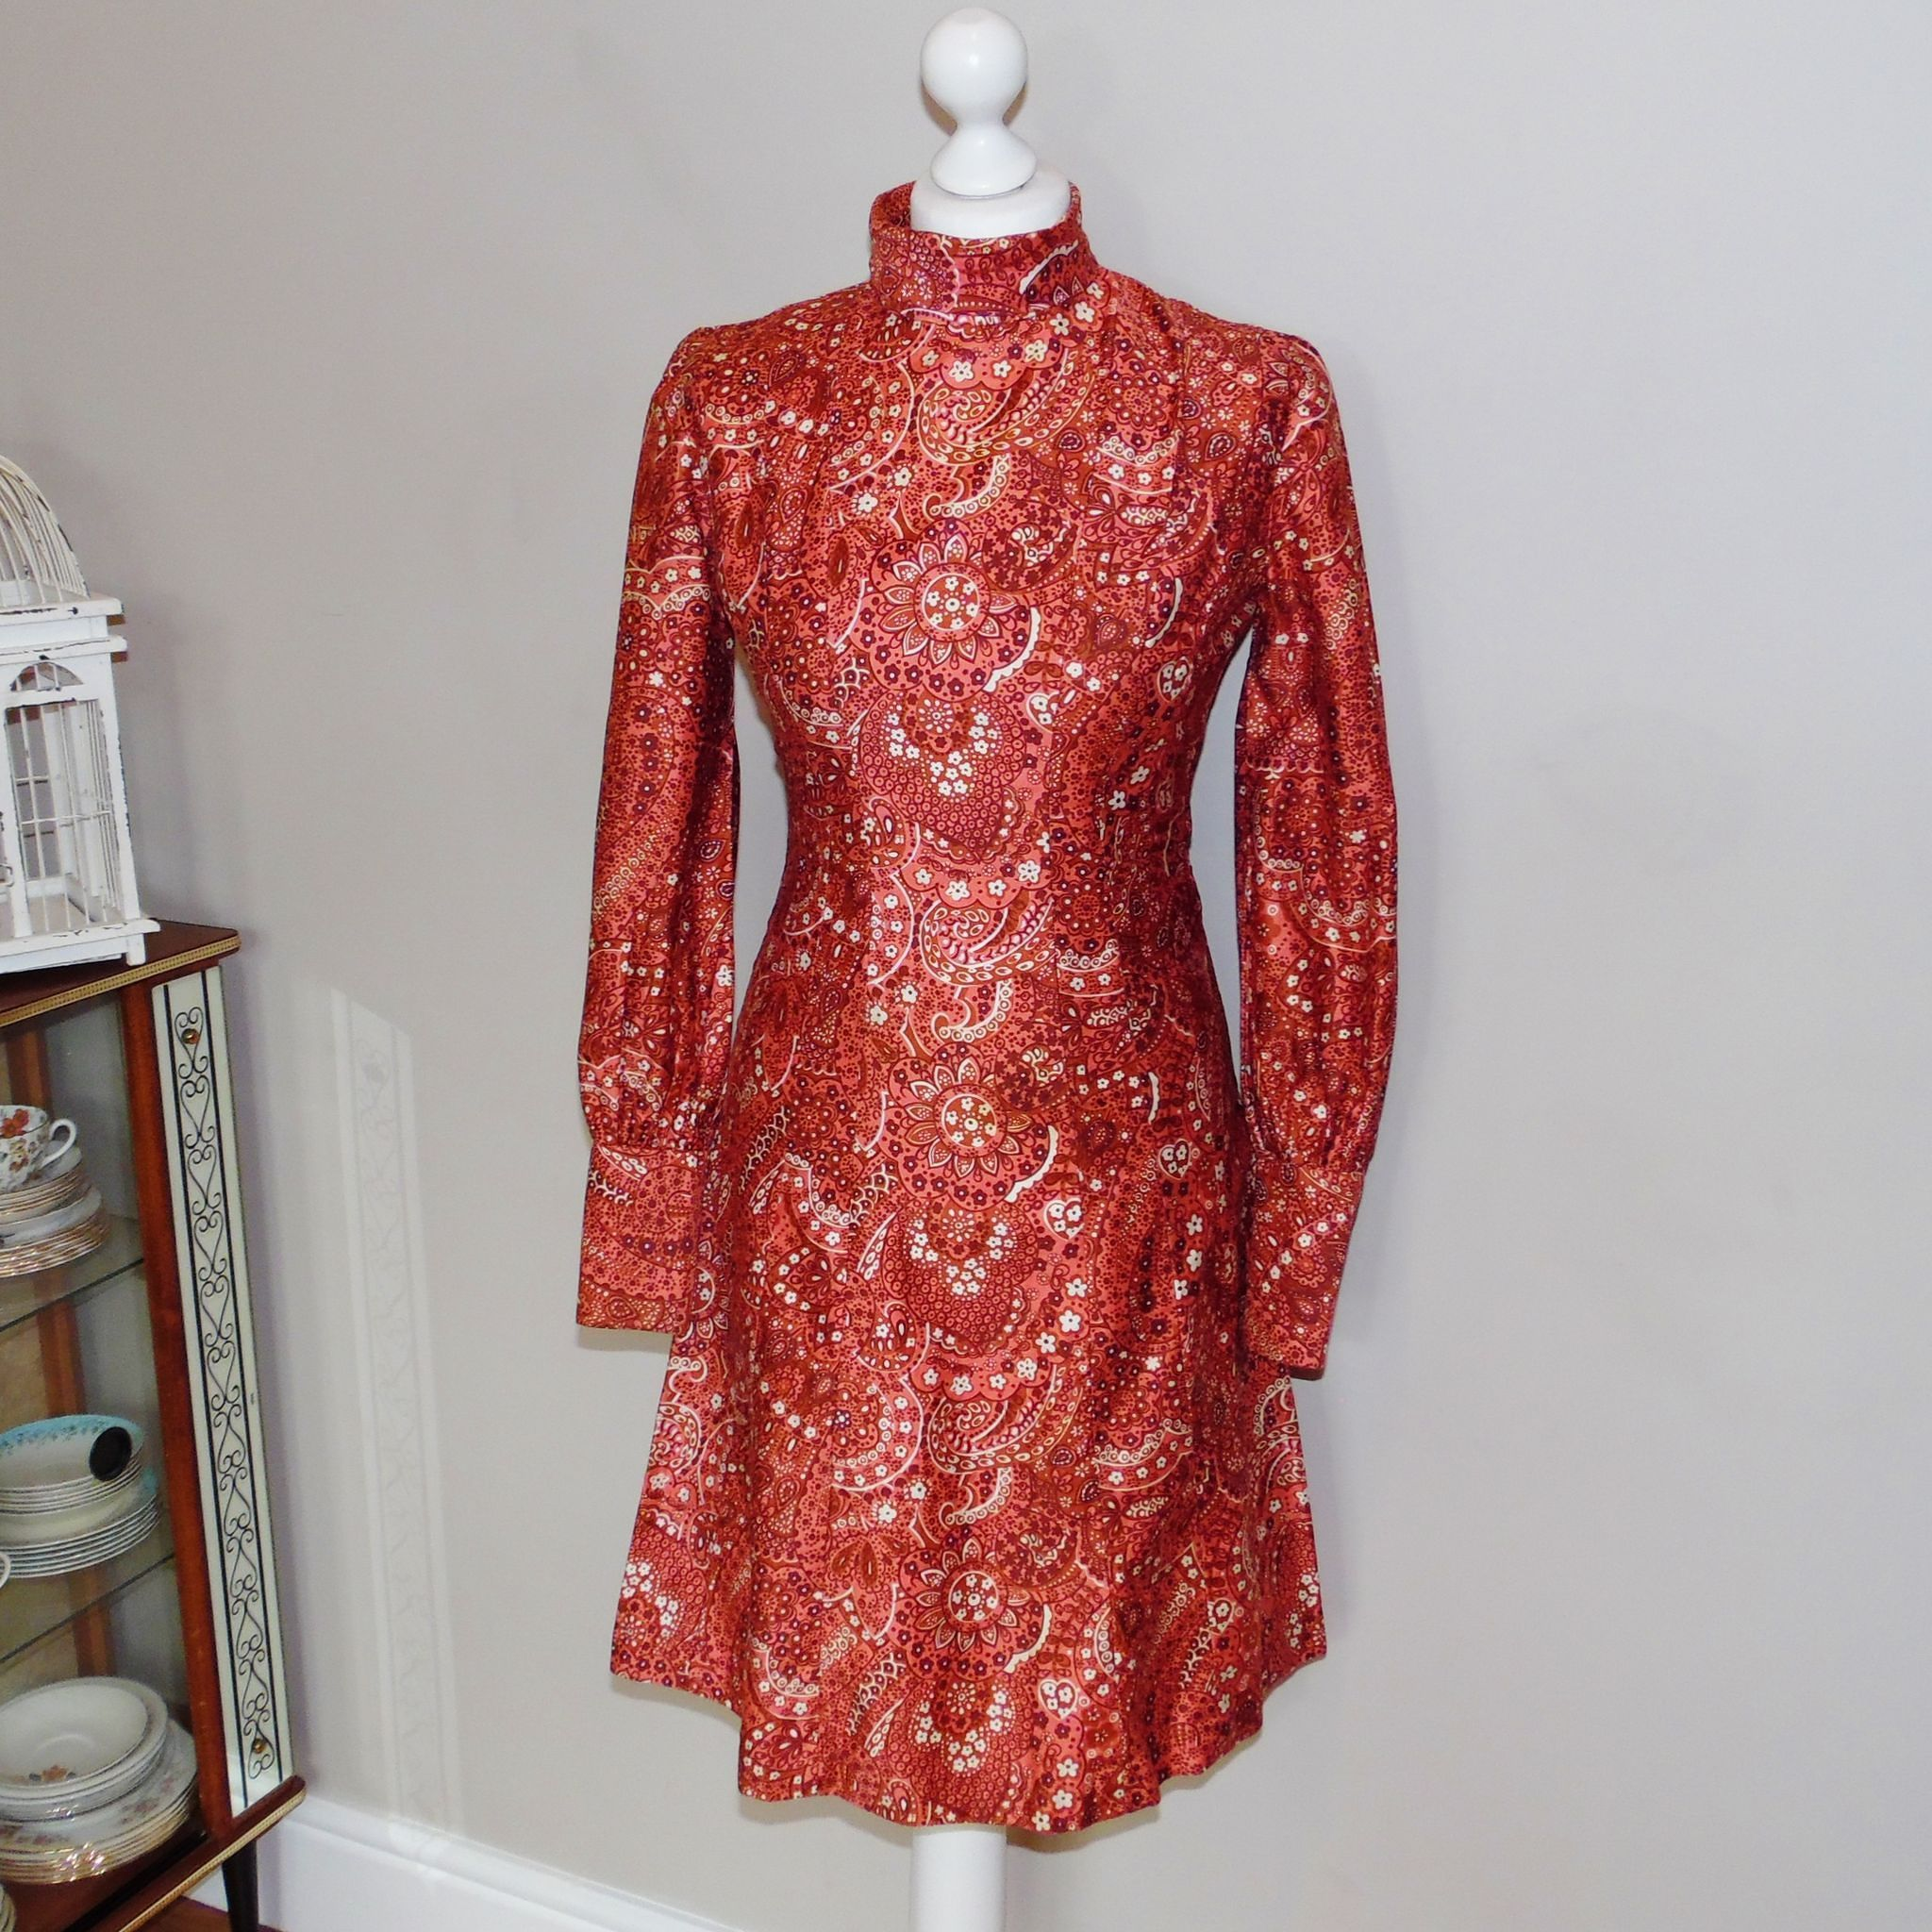 Long sleeve dress with red and coral psychedelic floral print has a